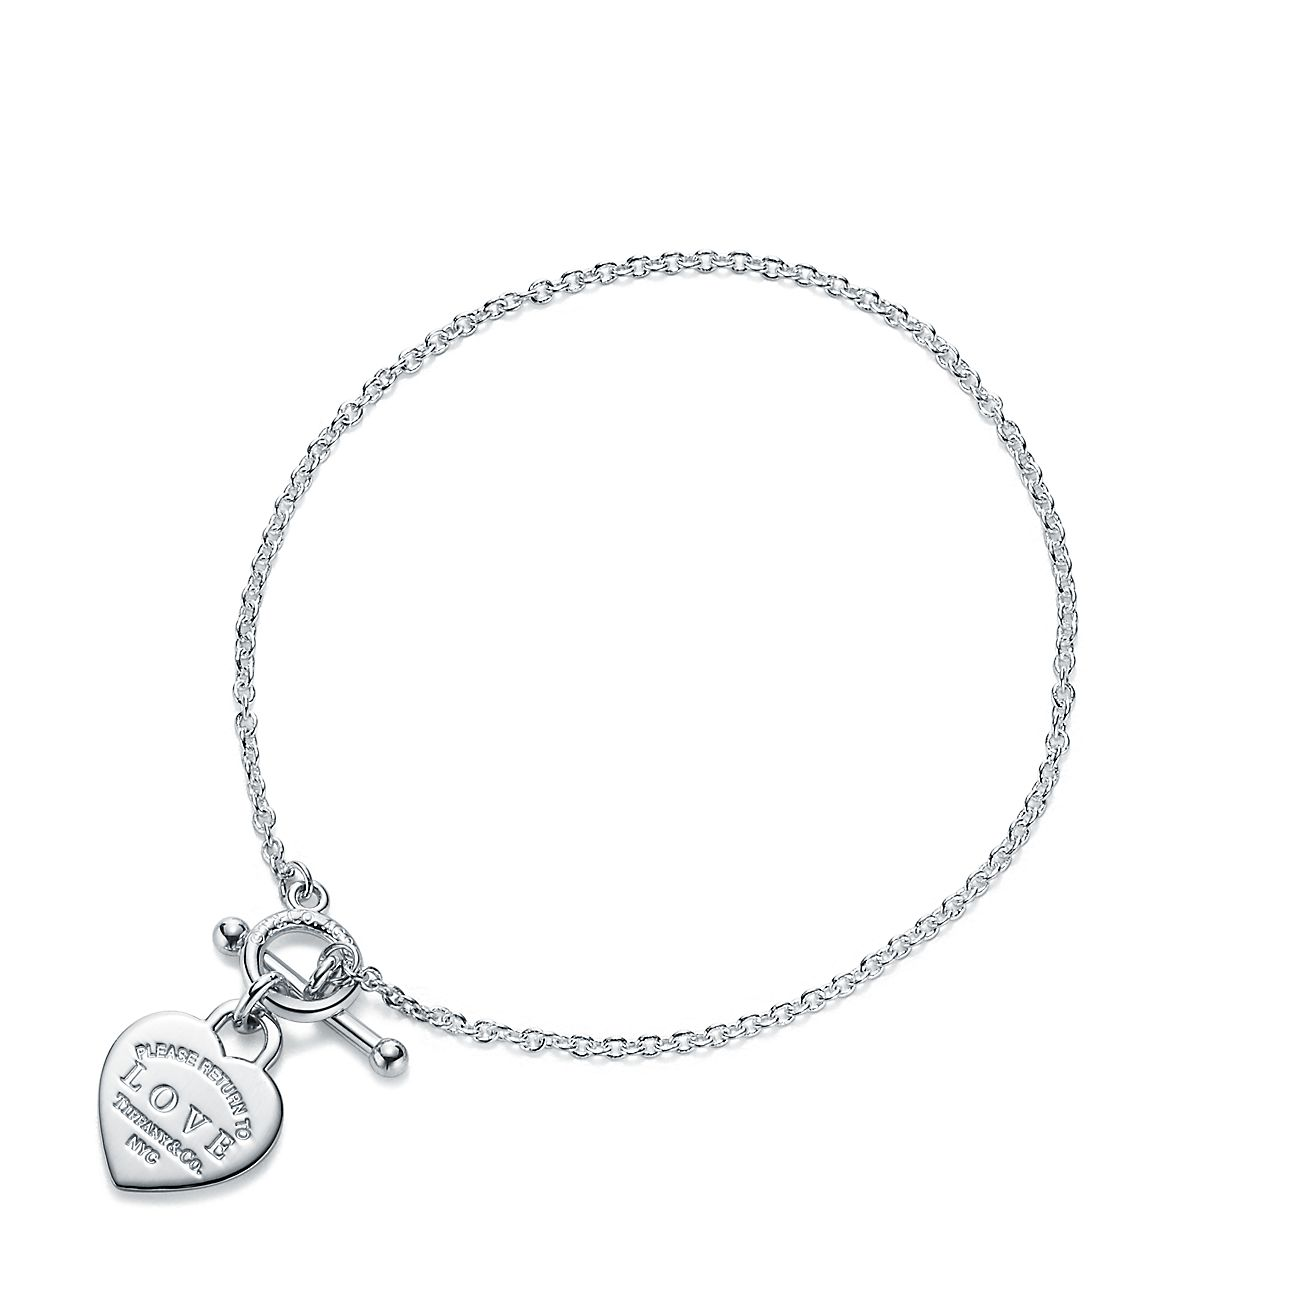 Return to Tiffany Love heart bead bracelet in silver with enamel finish - Size Medium Tiffany & Co. eWDZJ3scq